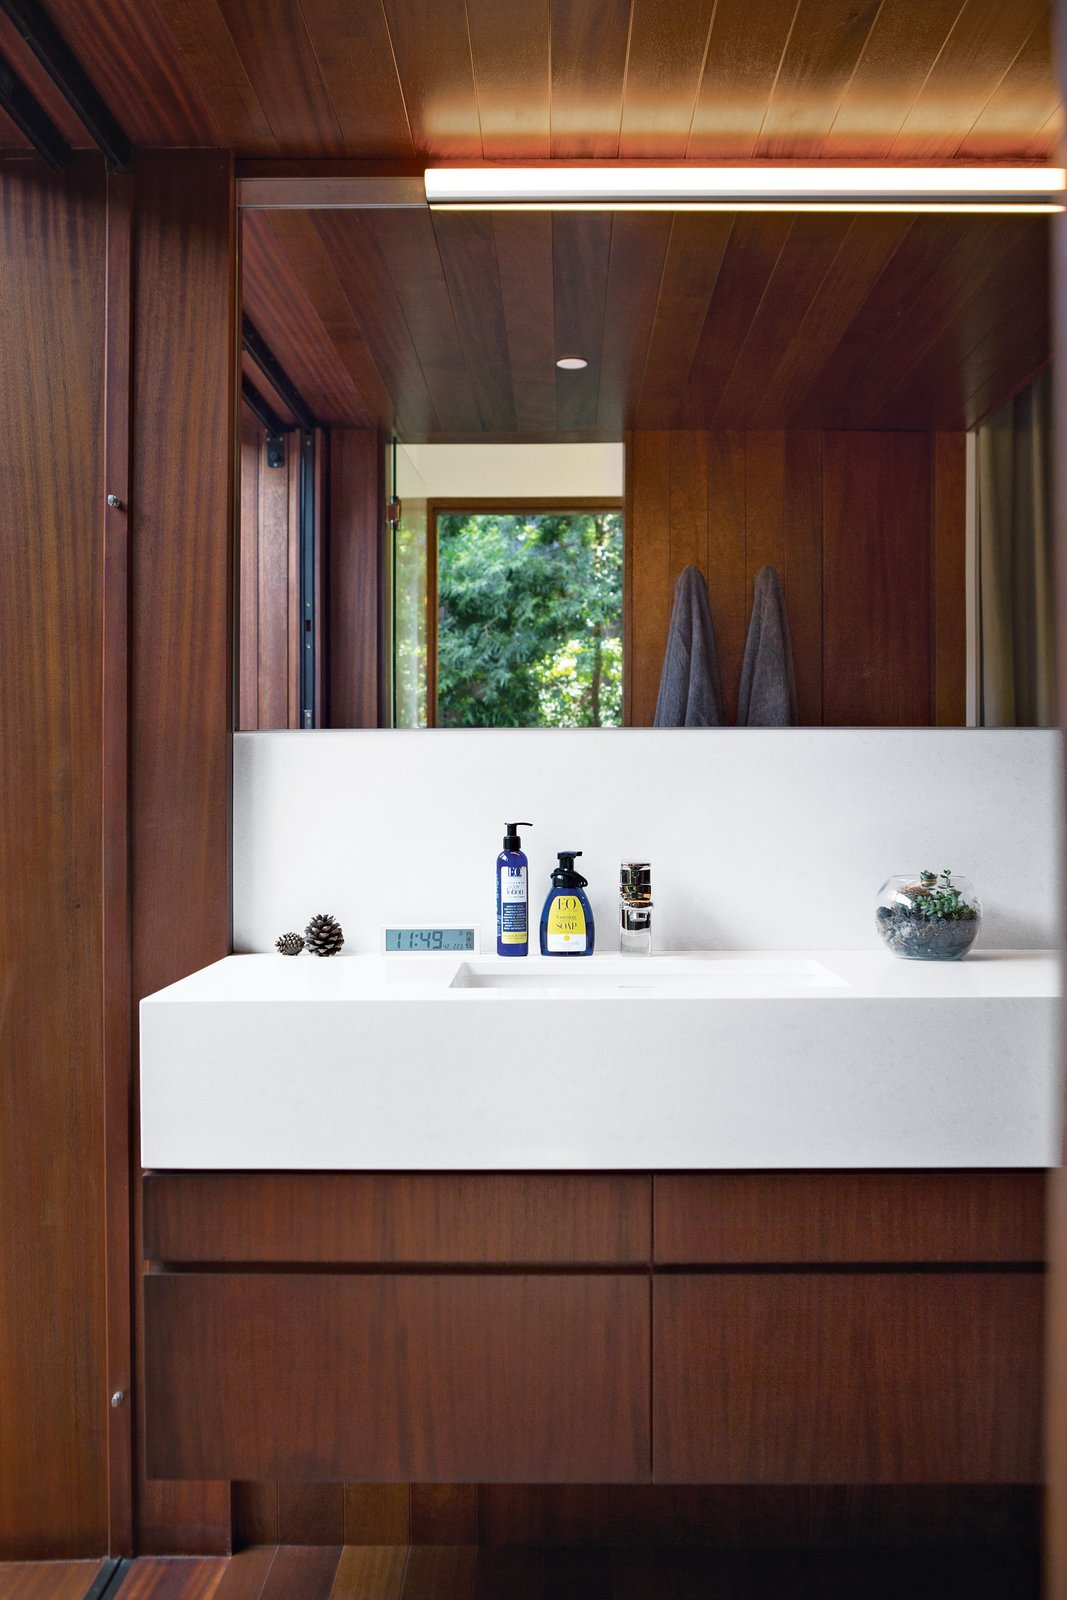 Bath Room, Accent Lighting, and Undermount Sink The couple chose to contrast the wood in the master bath with a smooth Caesarstone counter in Organic   White 4600, which was measured and cut specifically for the space. They added a bit of shine with polished-nickel Upton fixtures from Toto. Photo by Coral von Zumwalt.  Bathroom from A Modern Bungalow in Venice Beach